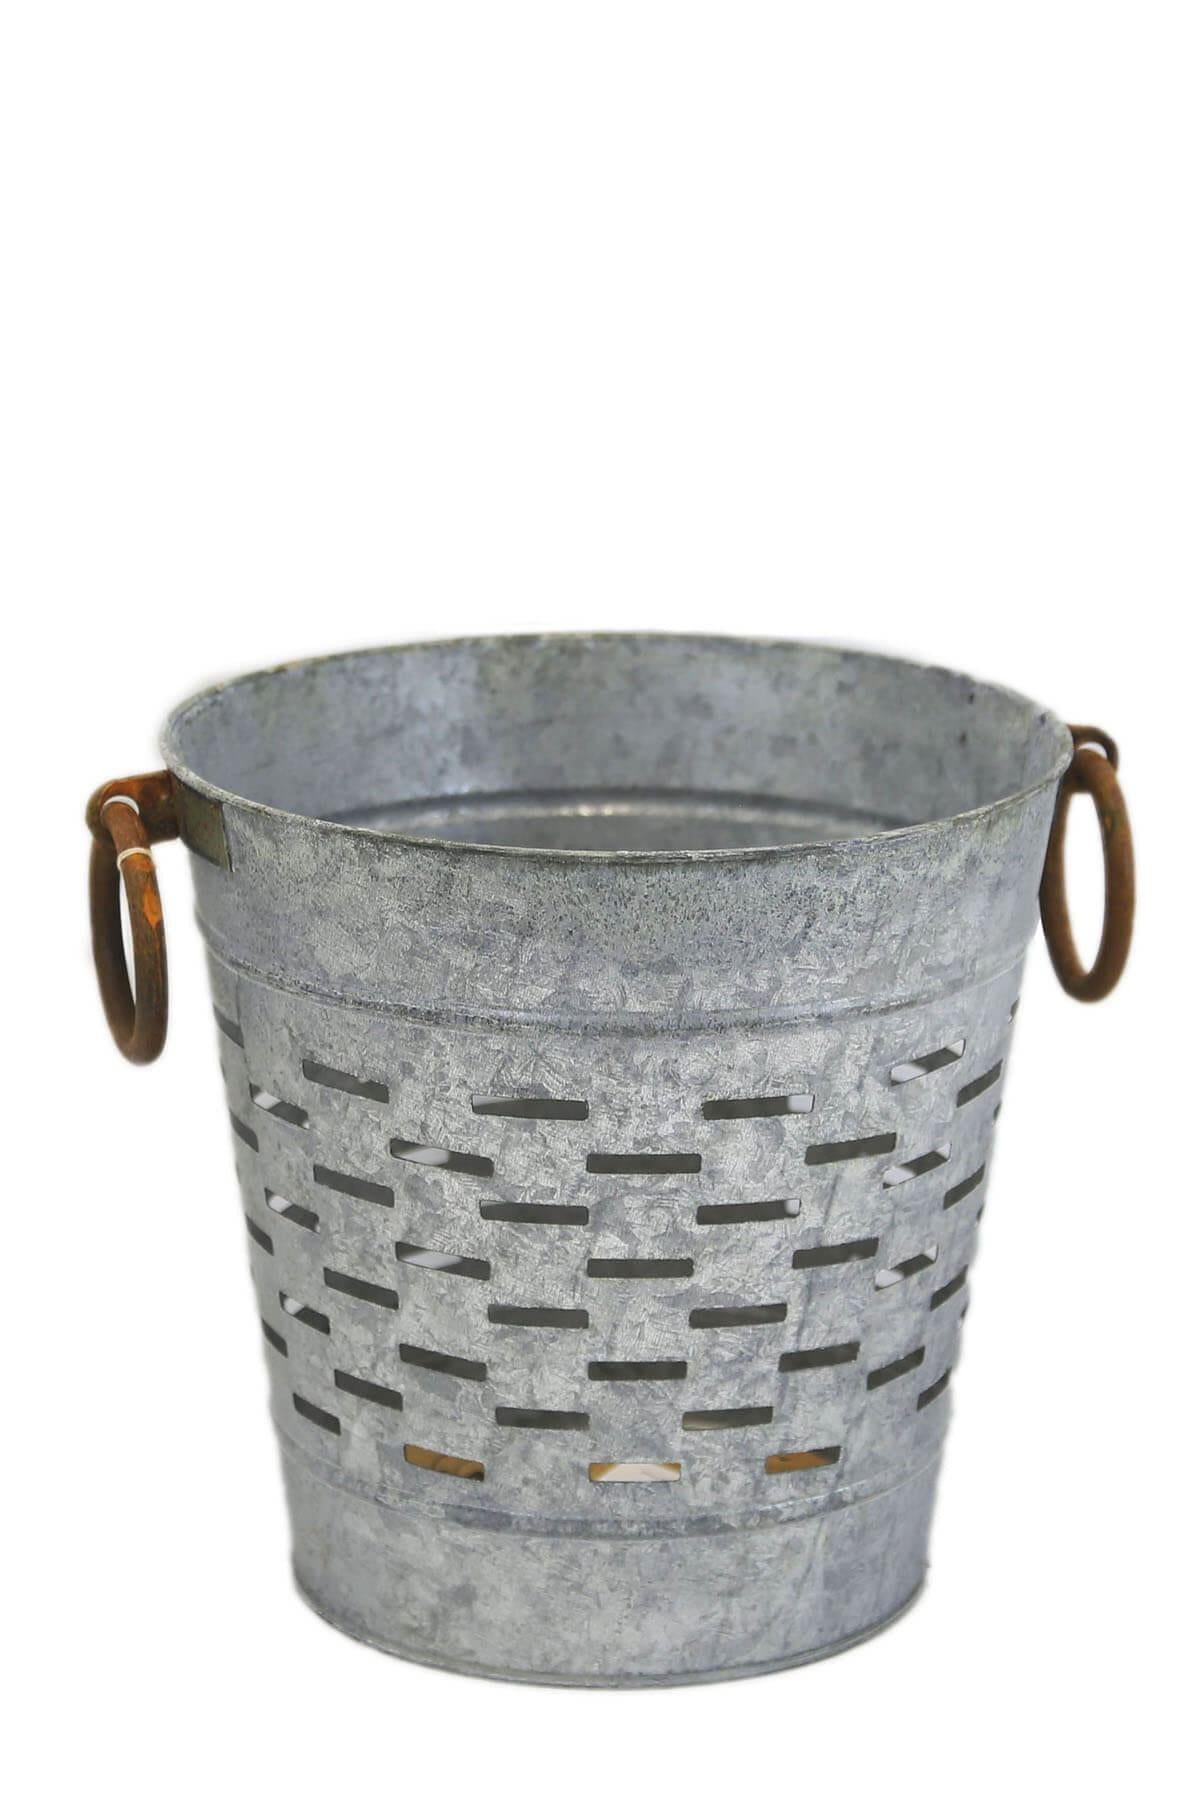 "Tuscan 9"" Olive Bucket  with Copper Ring Handles"